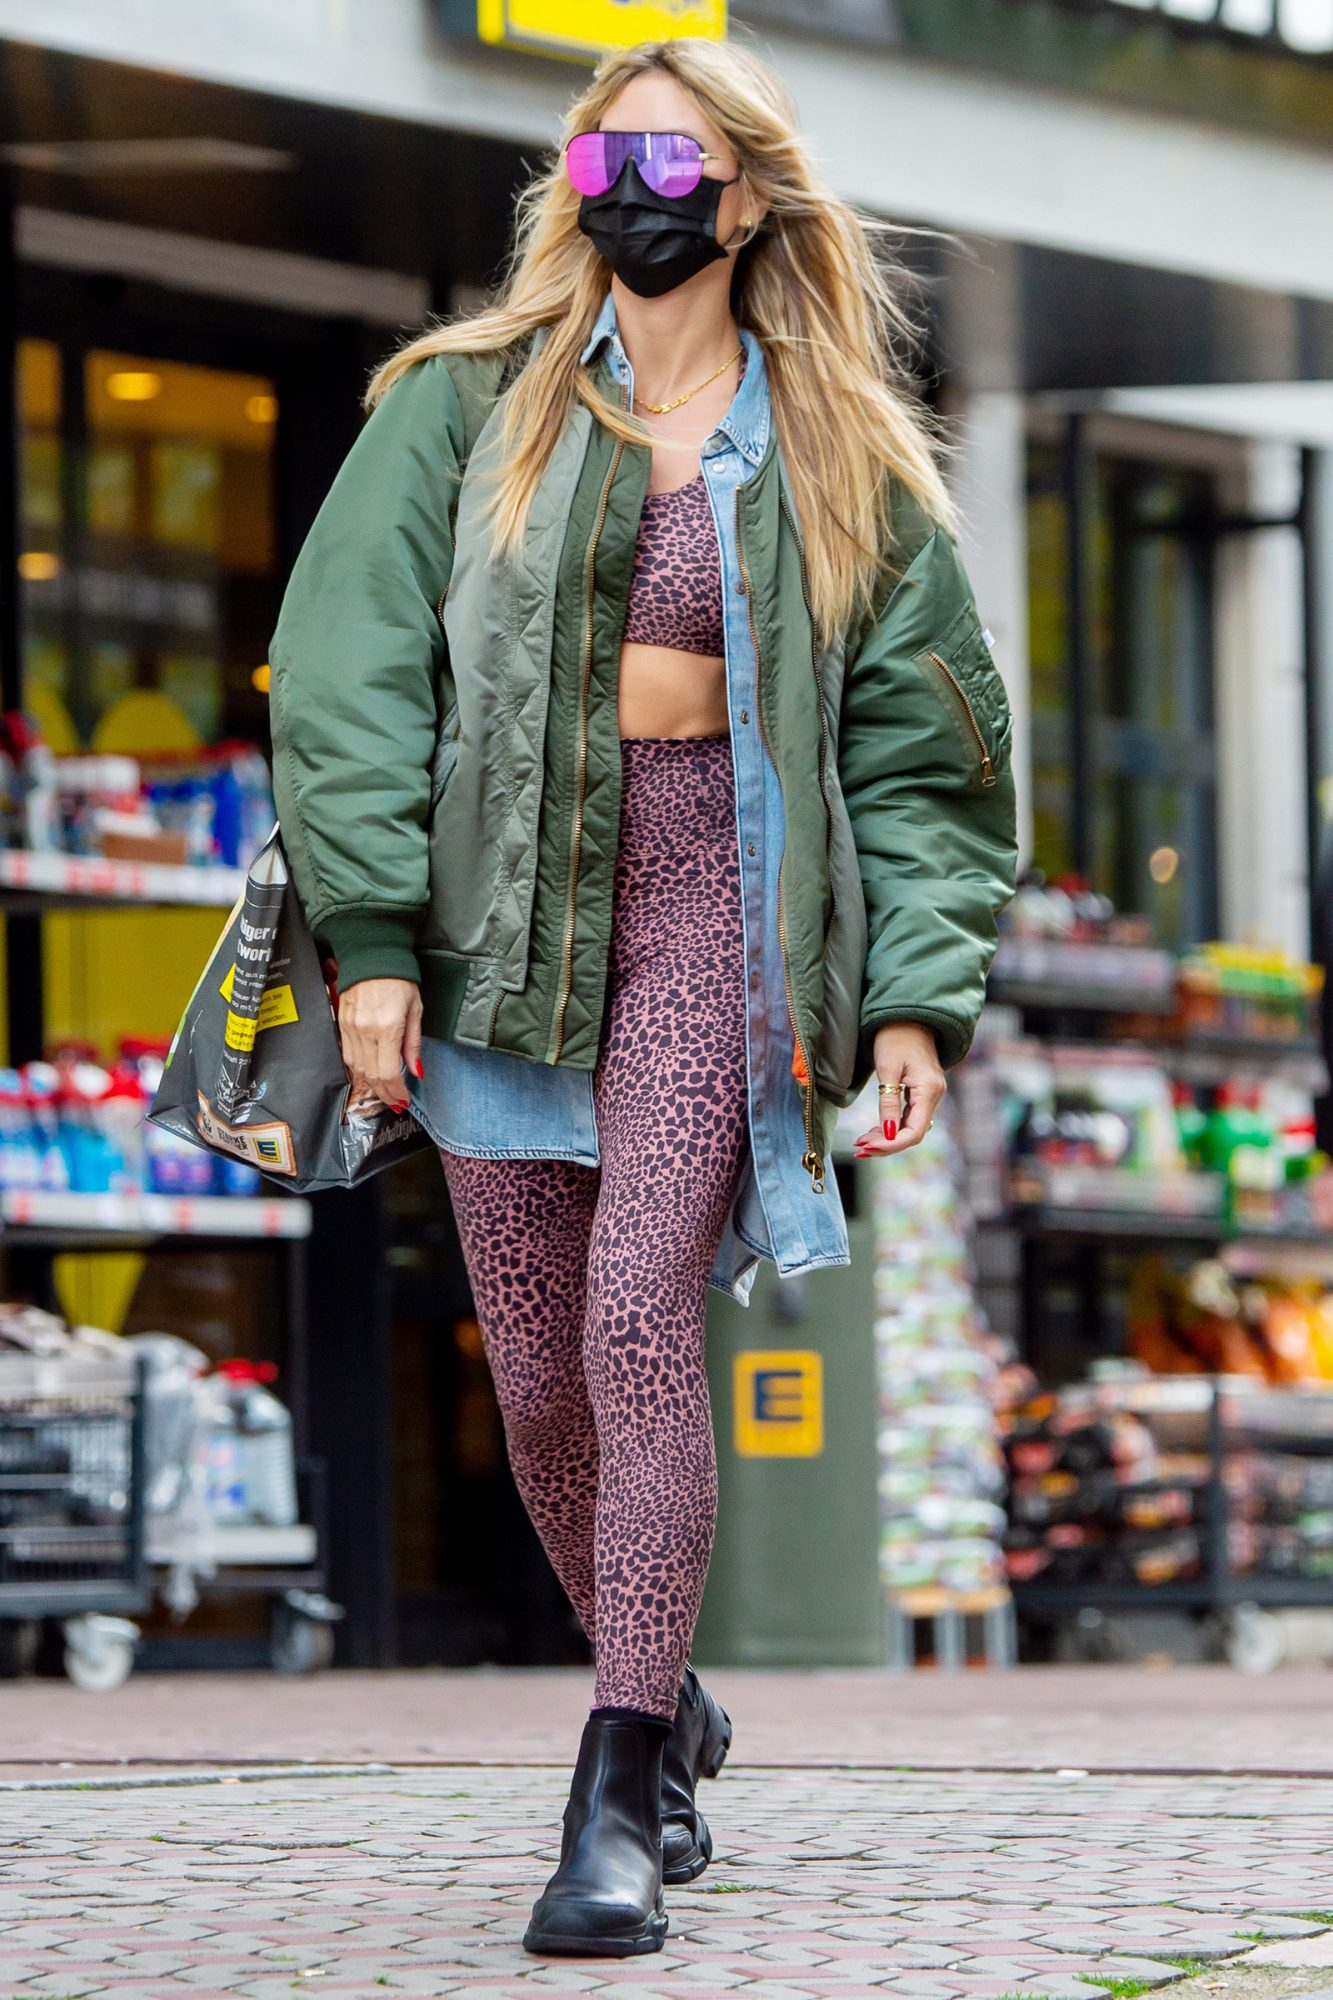 Heidi Klum Shows Her Midriff While Out Grocery Shopping With Her Mother Erna.